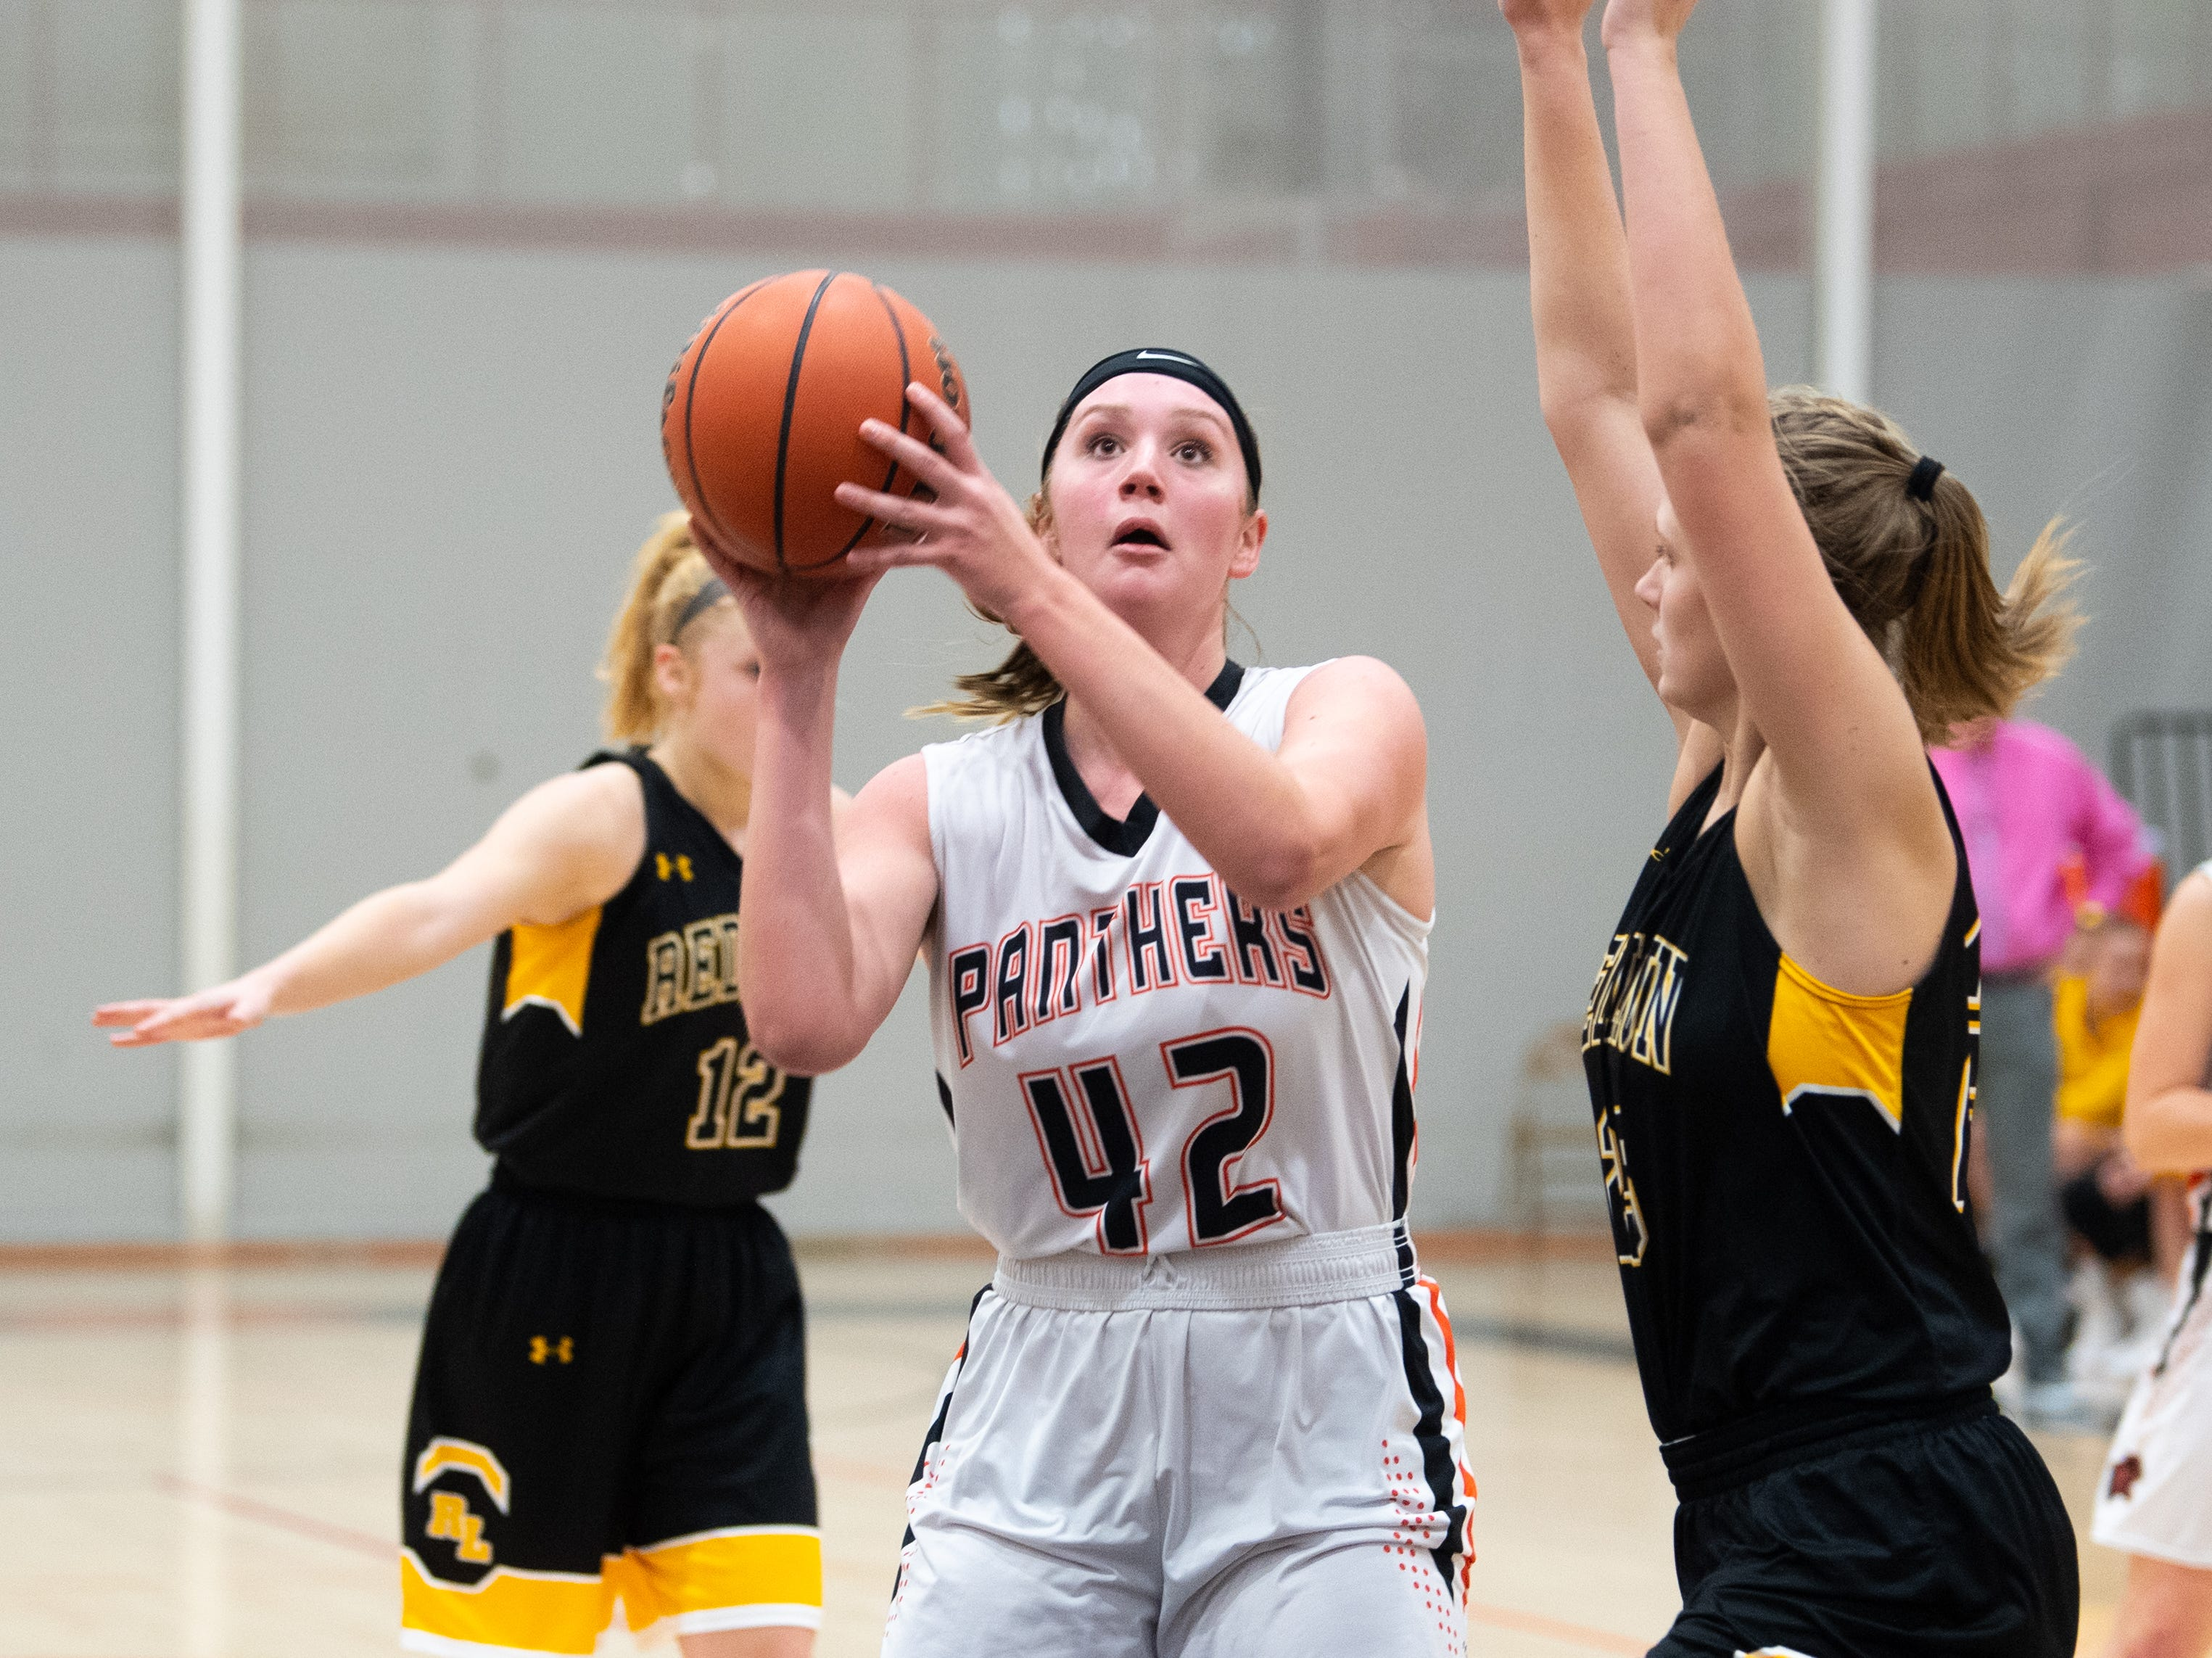 Emily Powell (42) has space to shoot during the girls' basketball game between Central York and Red Lion at Central York, Tuesday, December 11, 2018. The Panthers defeated the Lions 40-38.